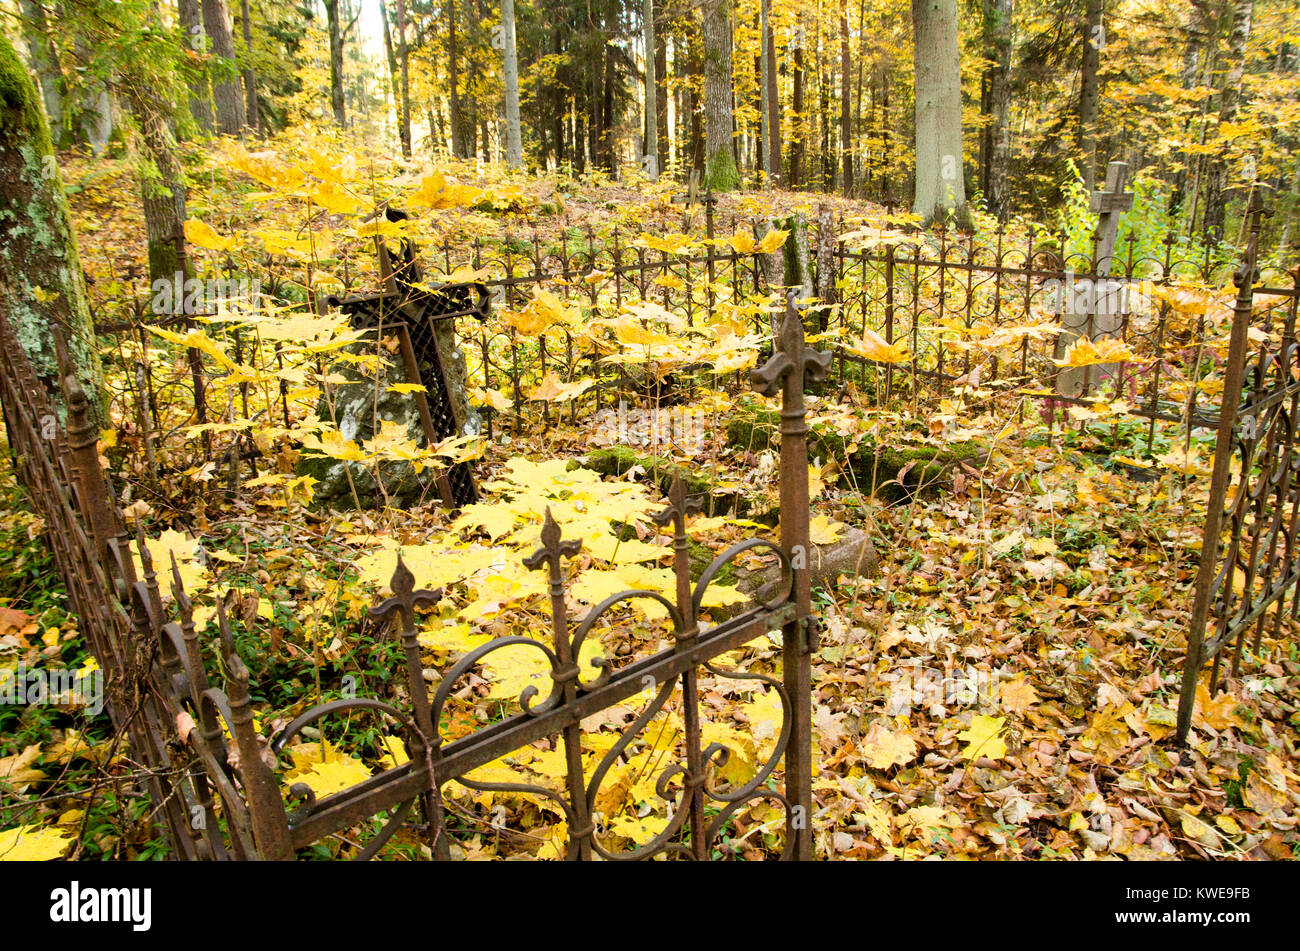 A shot of an old cemetary graveyard in the woods with crooked rusty metal cross and fence around it with yellow Stock Photo